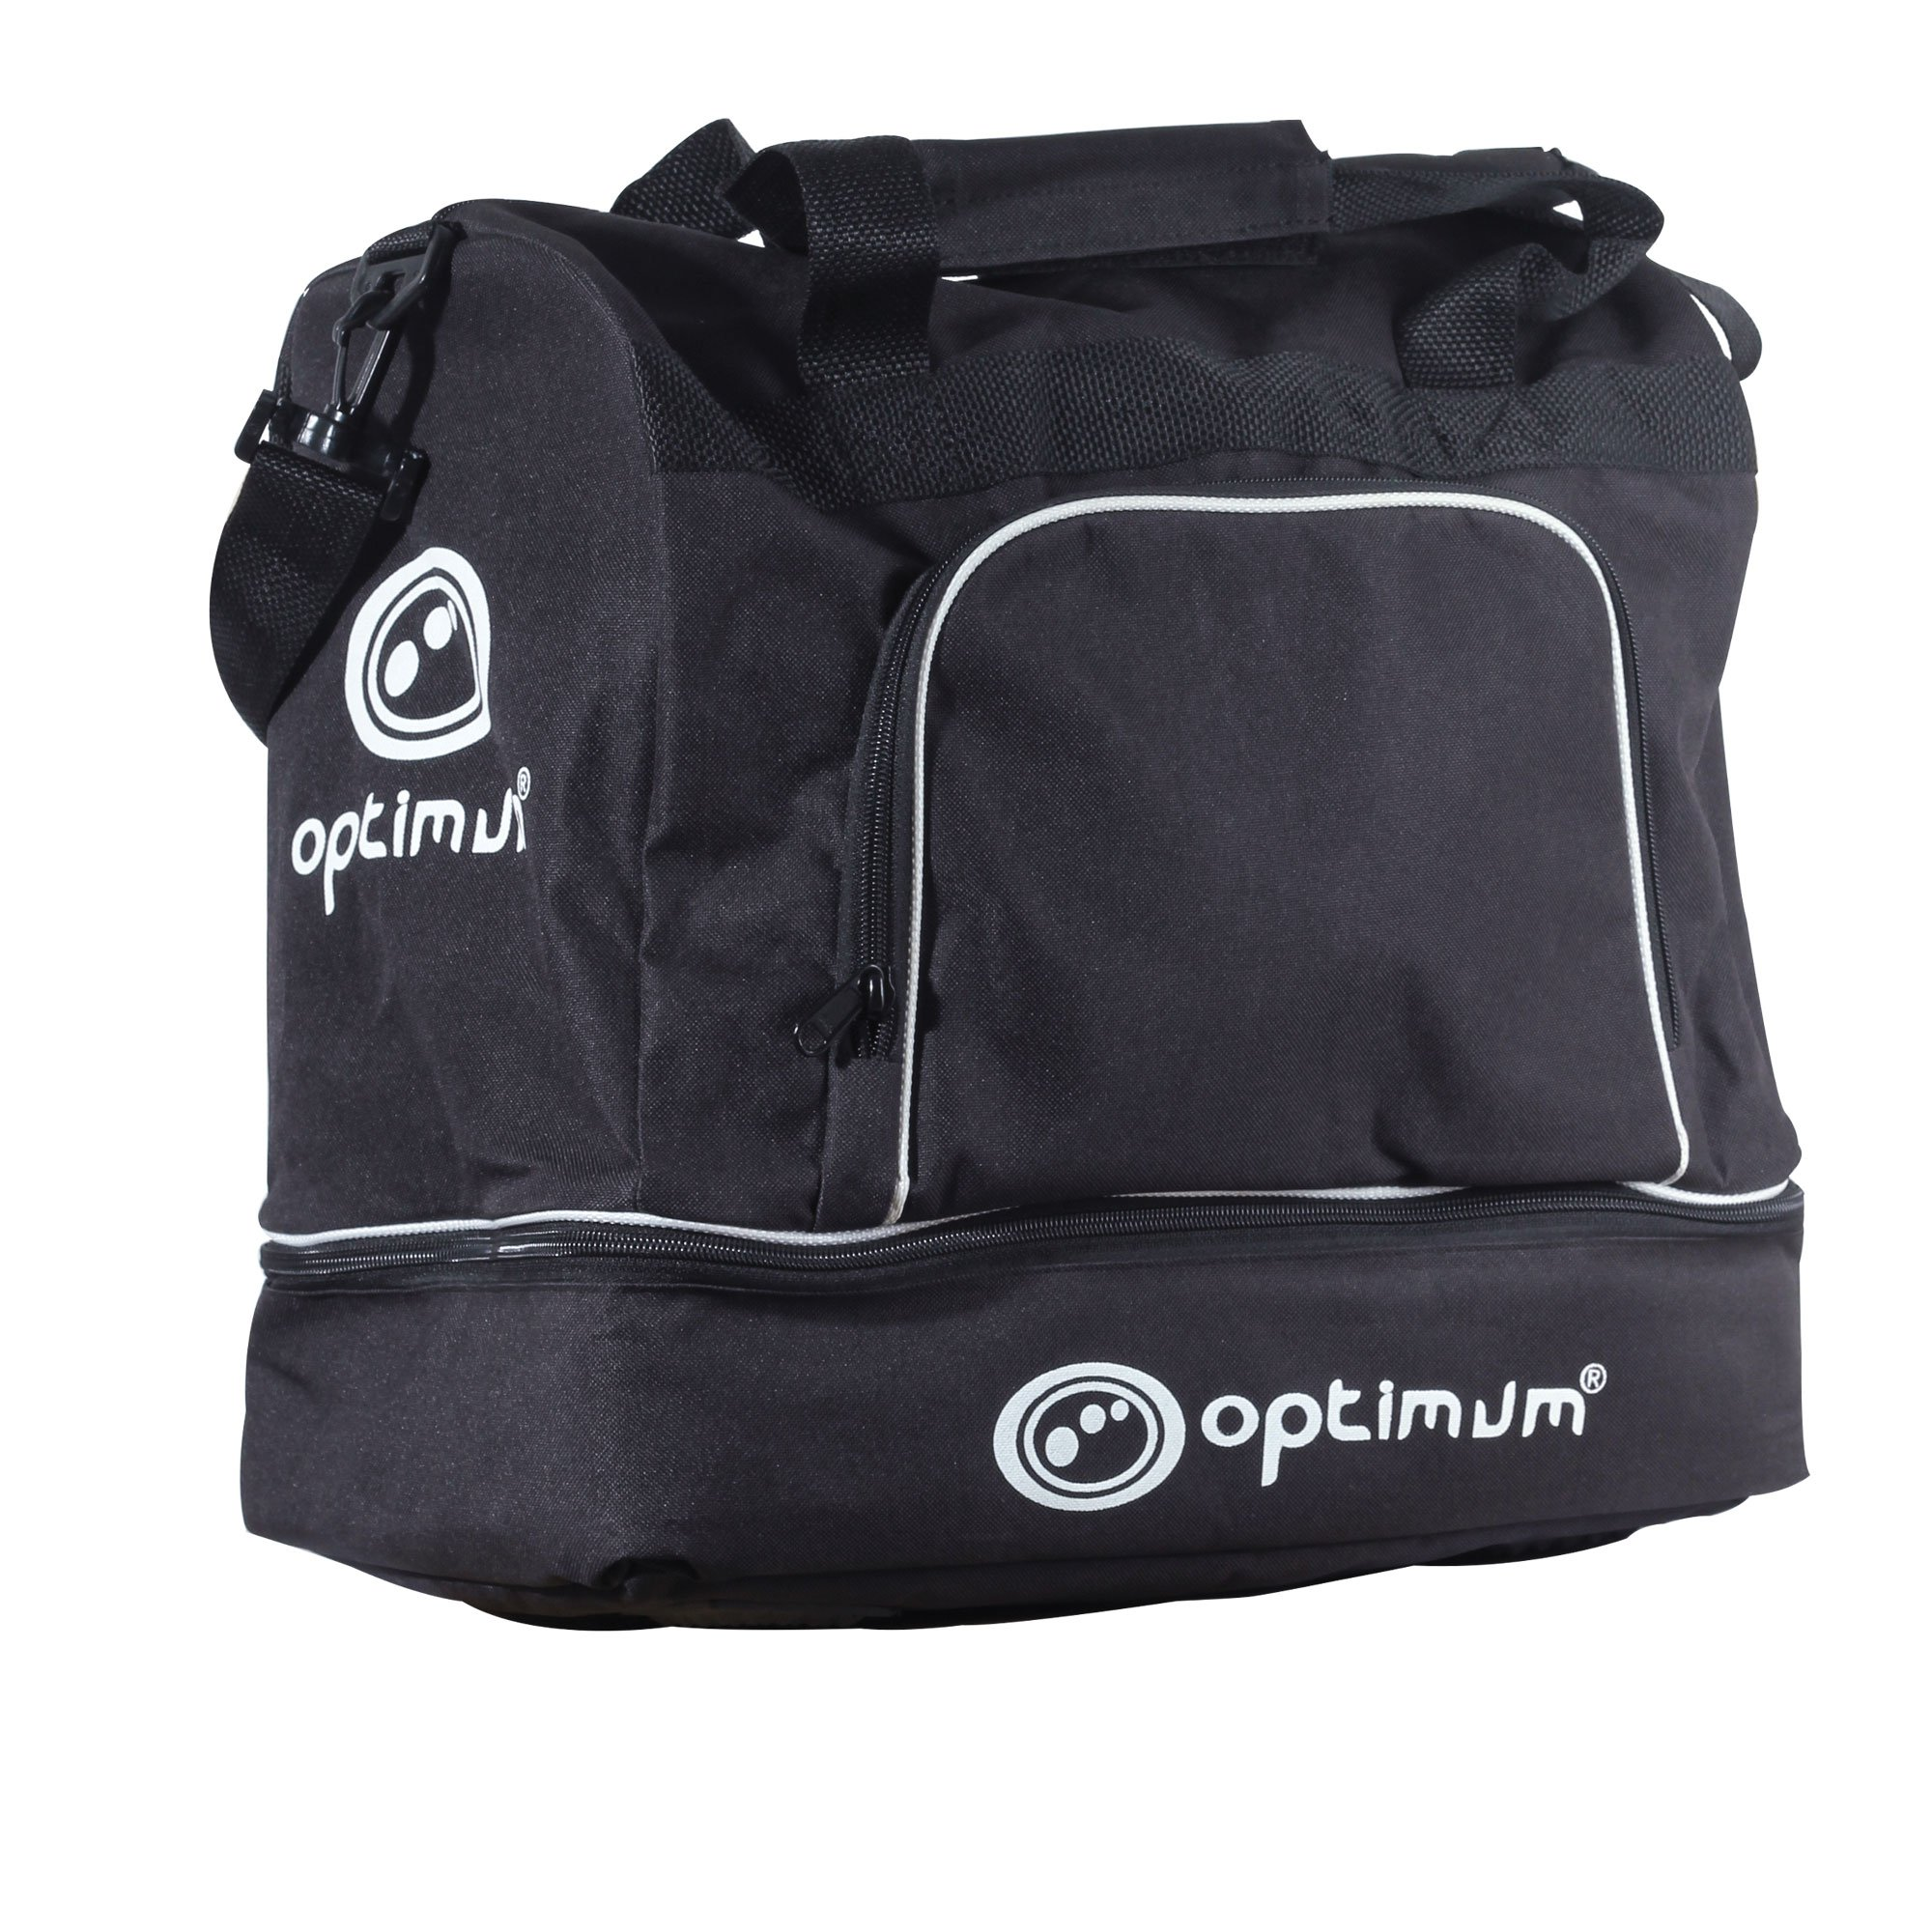 Optimum de reproductor Kit bolsa, color negro/blanco, tamaño JNR